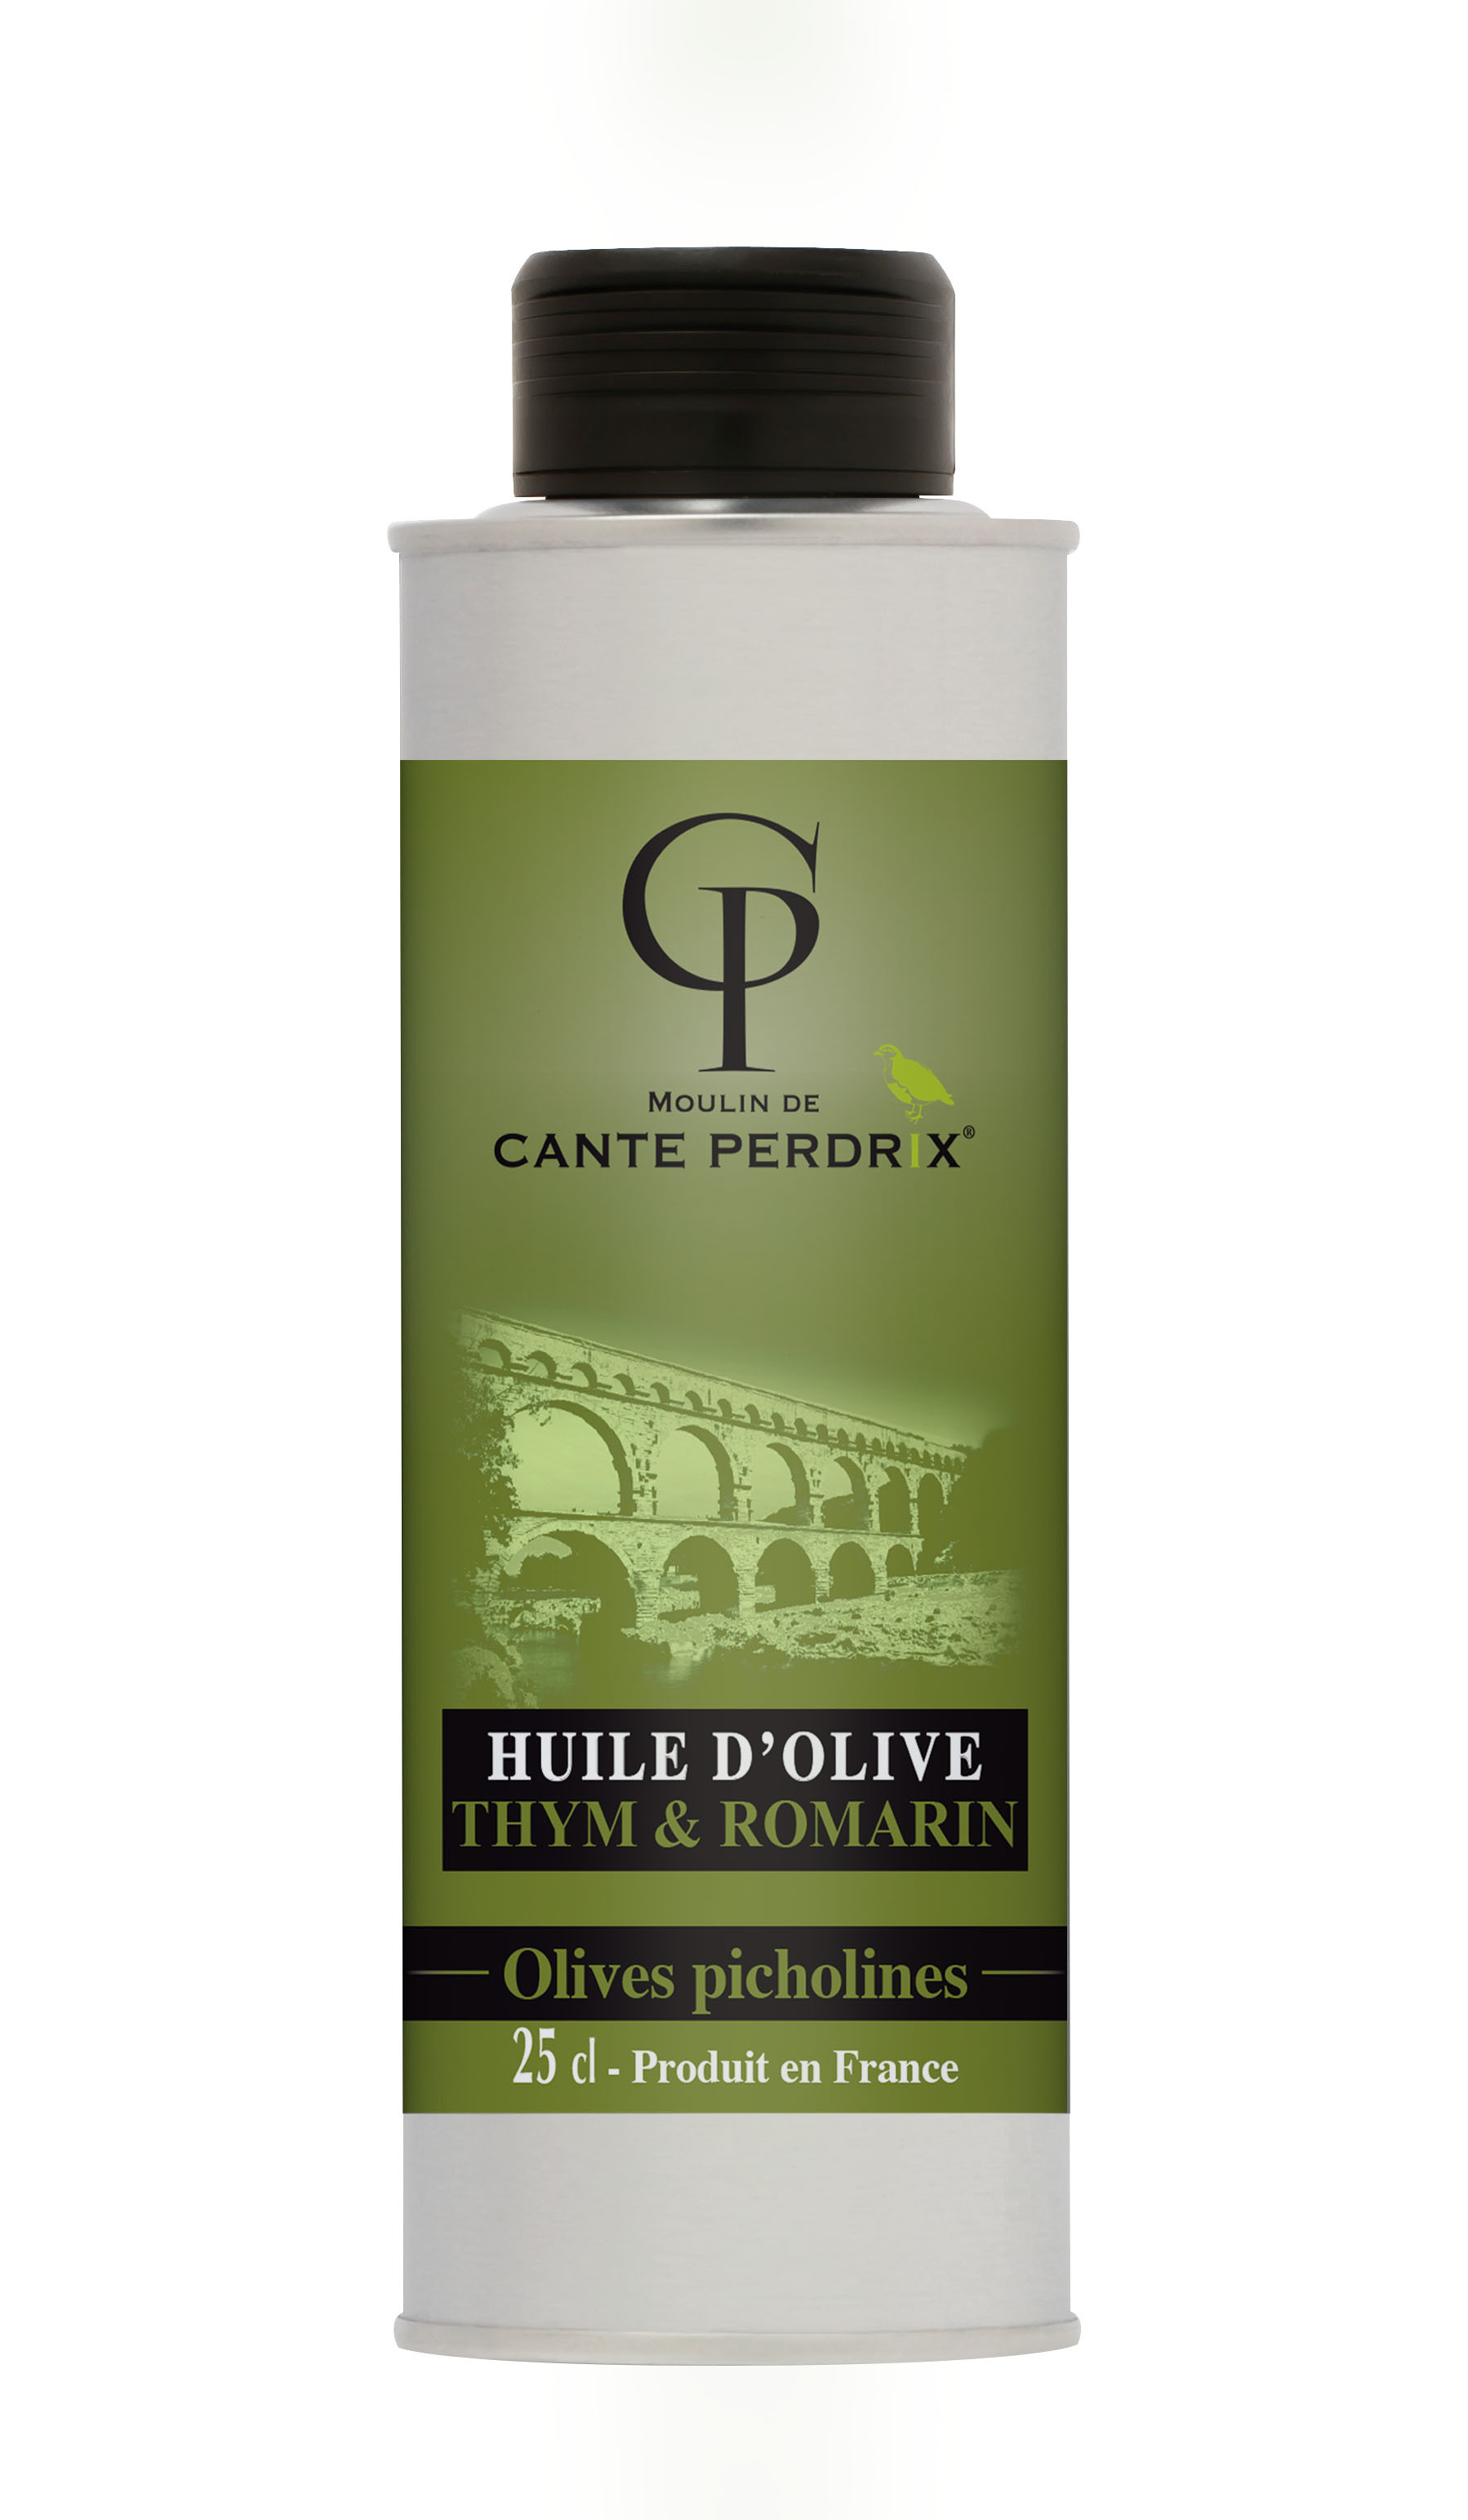 Huile d'olive vierge Thym & Romarin 25 cl